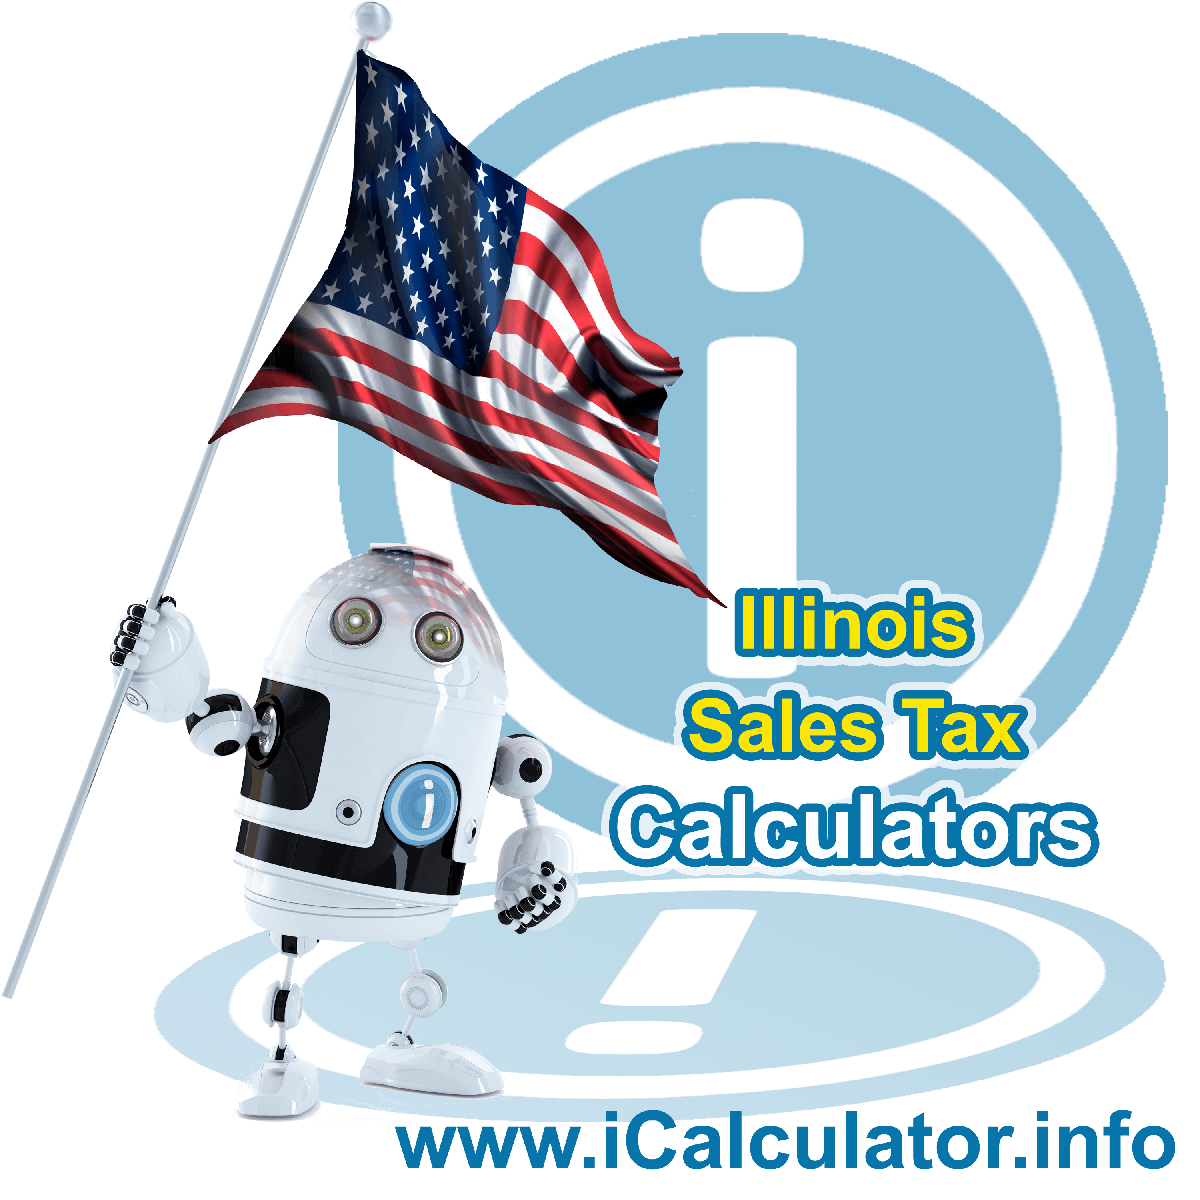 Royal Sales Rates: This image illustrates a calculator robot calculating Royal sales tax manually using the Royal Sales Tax Formula. You can use this information to calculate Royal Sales Tax manually or use the Royal Sales Tax Calculator to calculate sales tax online.